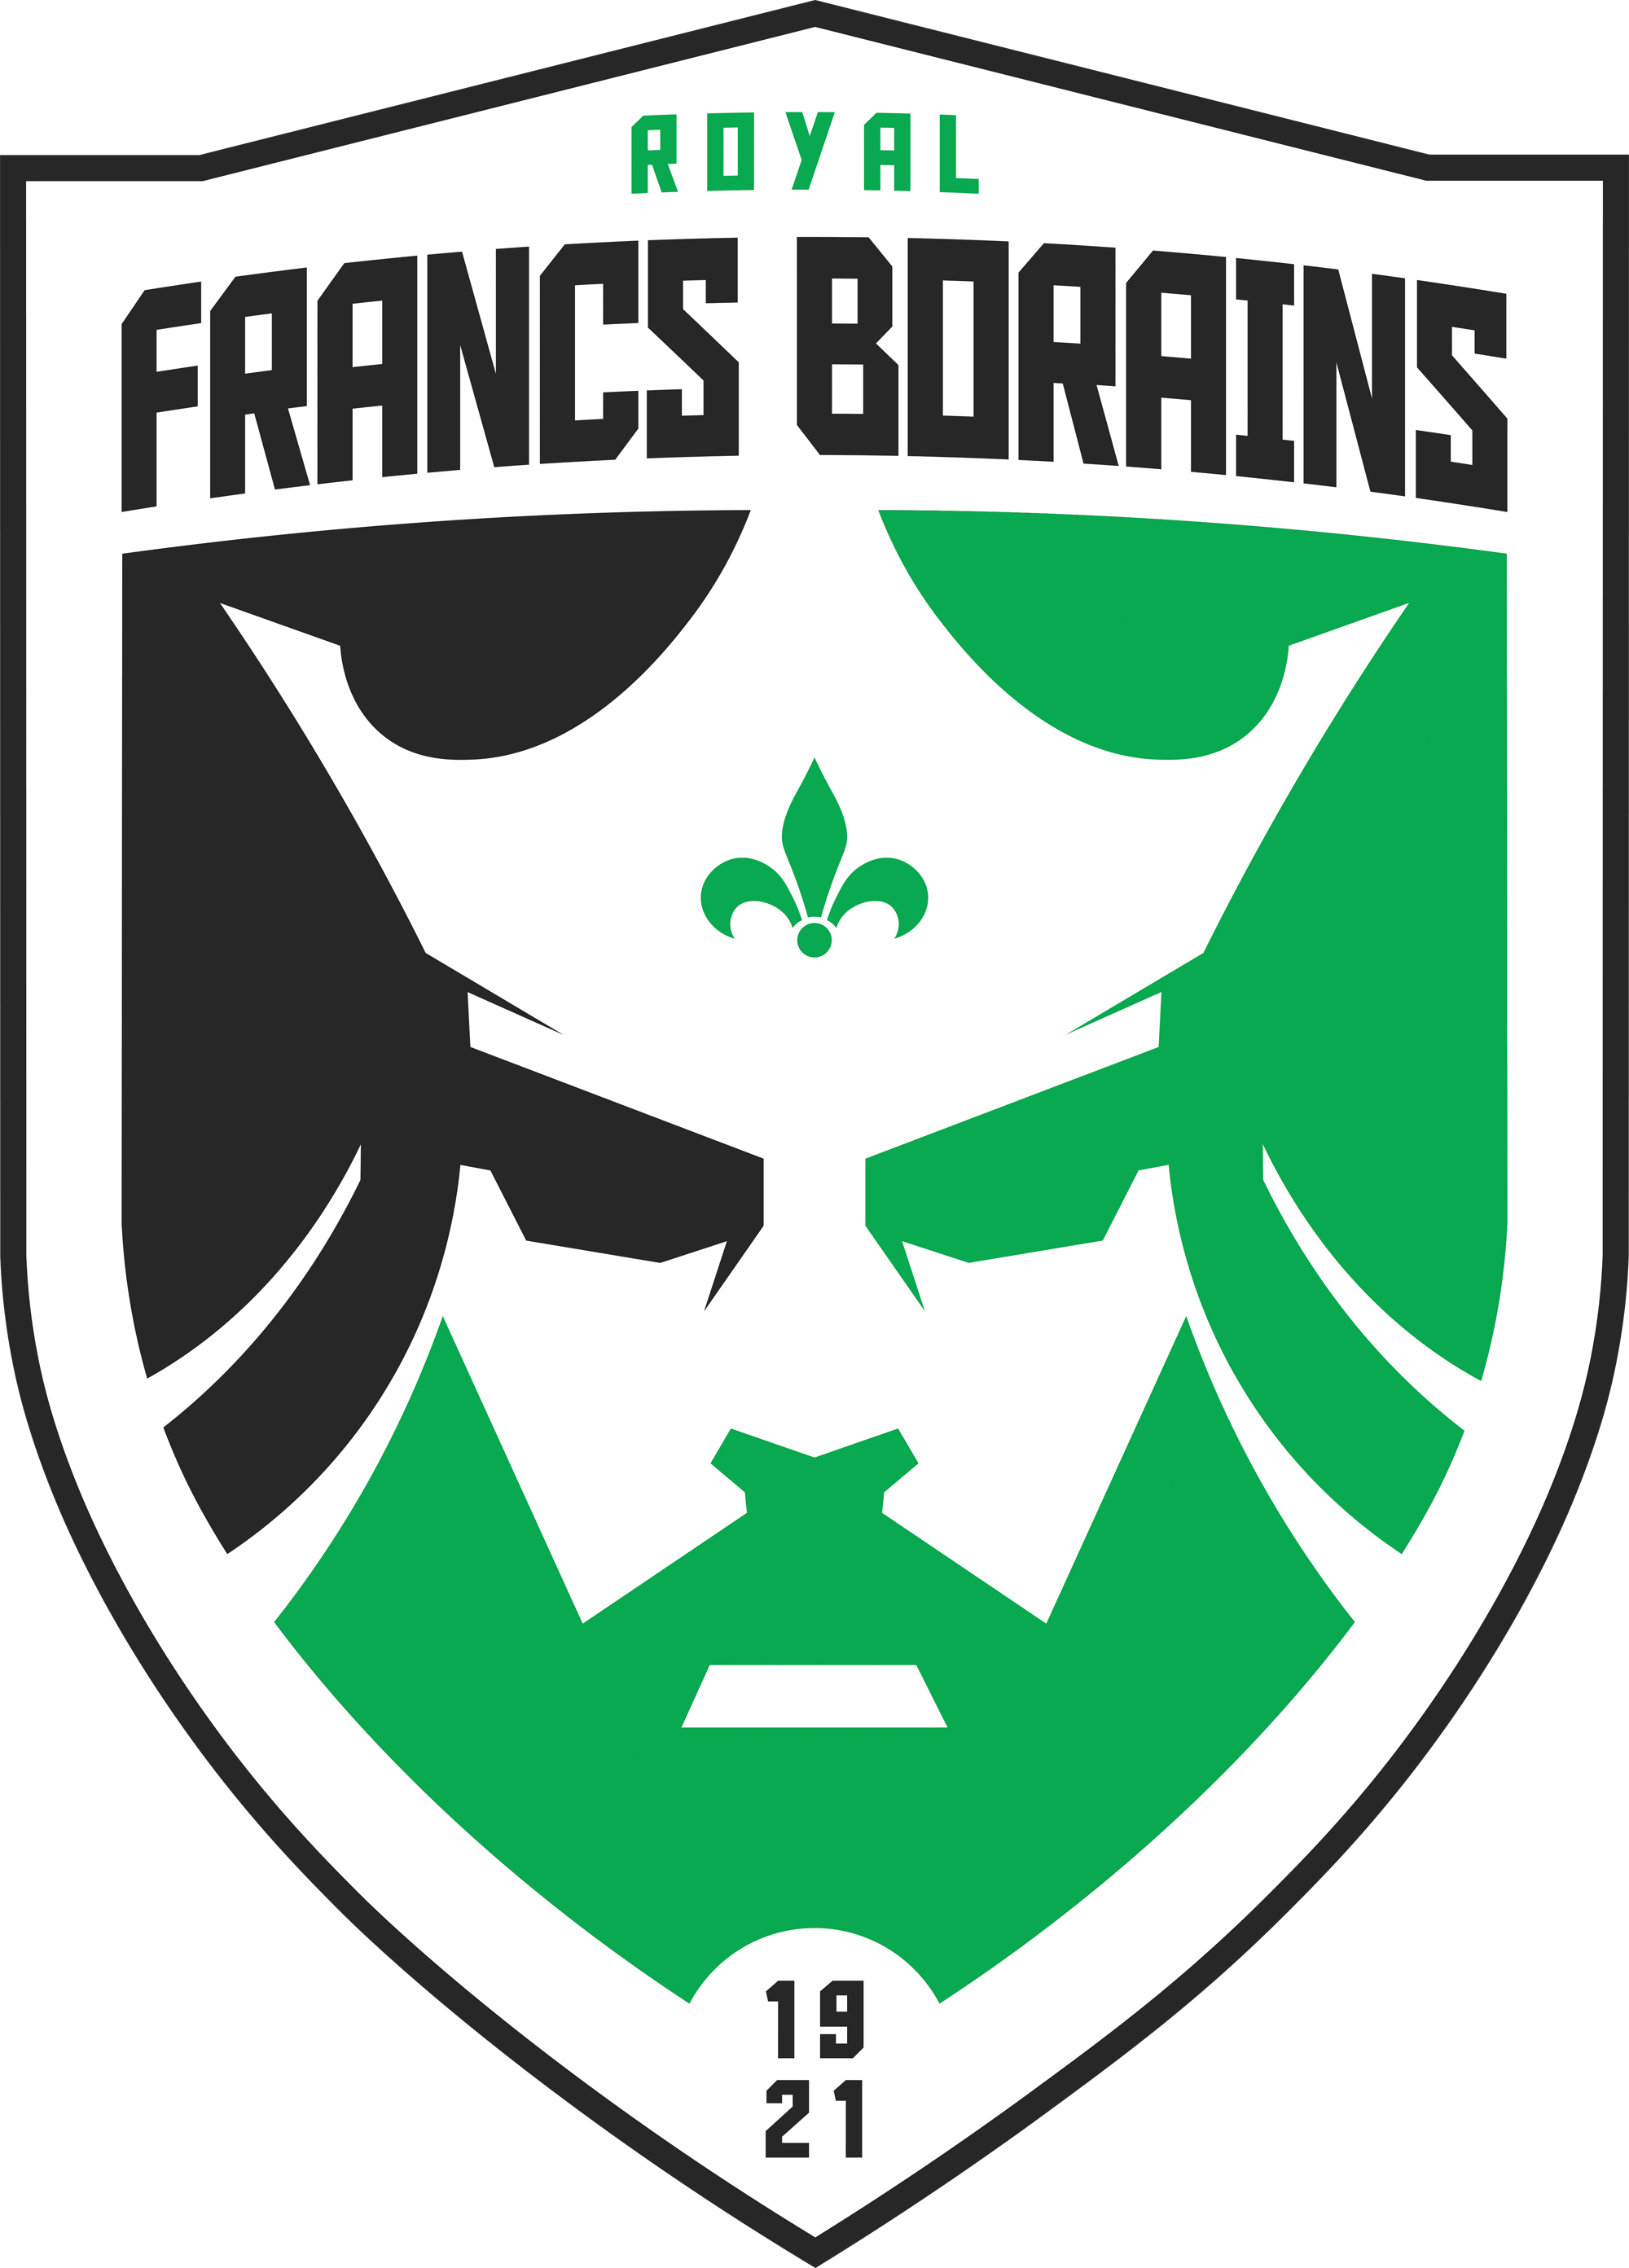 7 - Francs Borains A